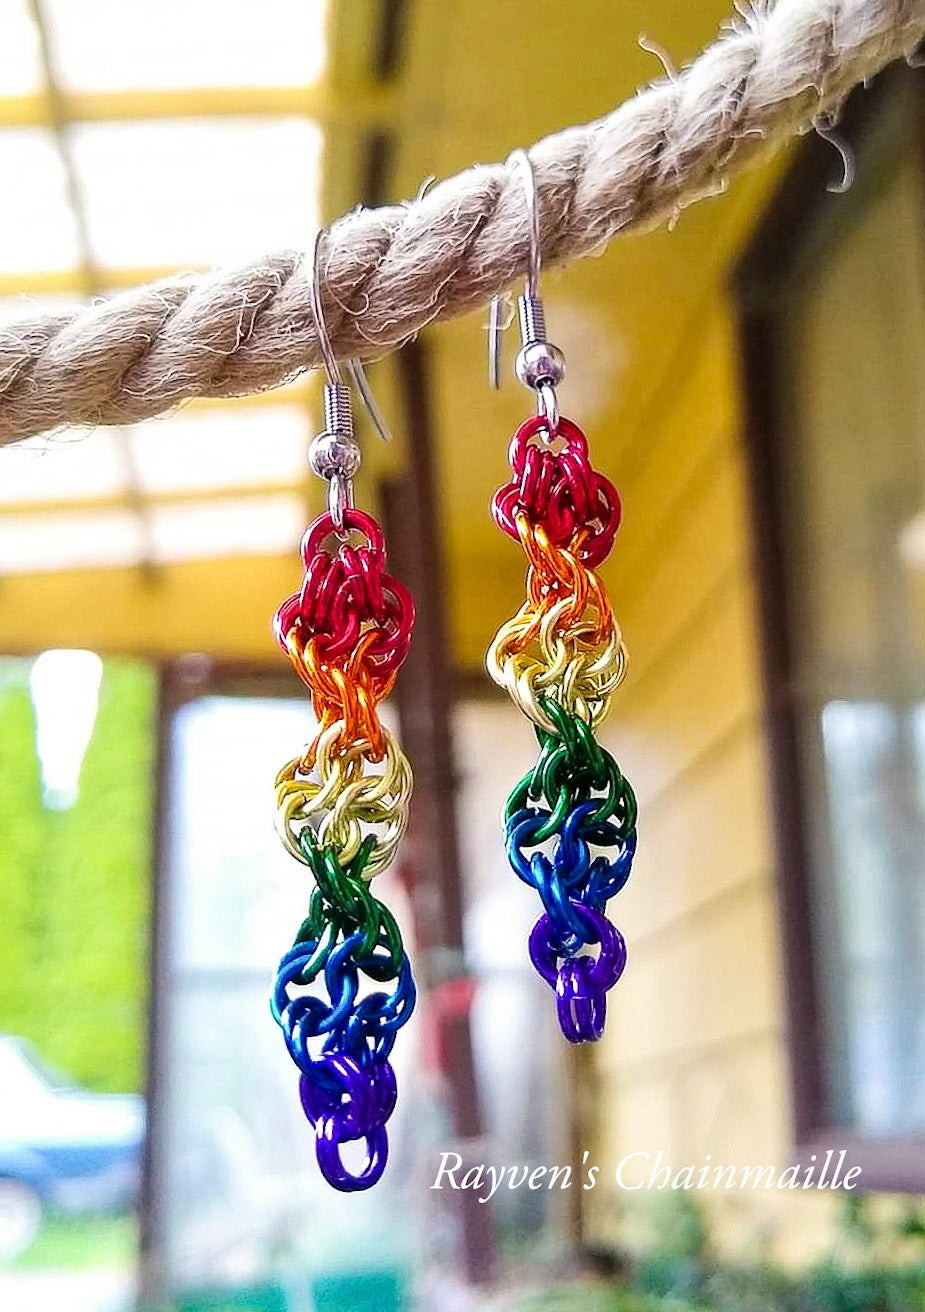 Rainbow Double Helix Chainmail Earrings - Rayven's Chainmaille